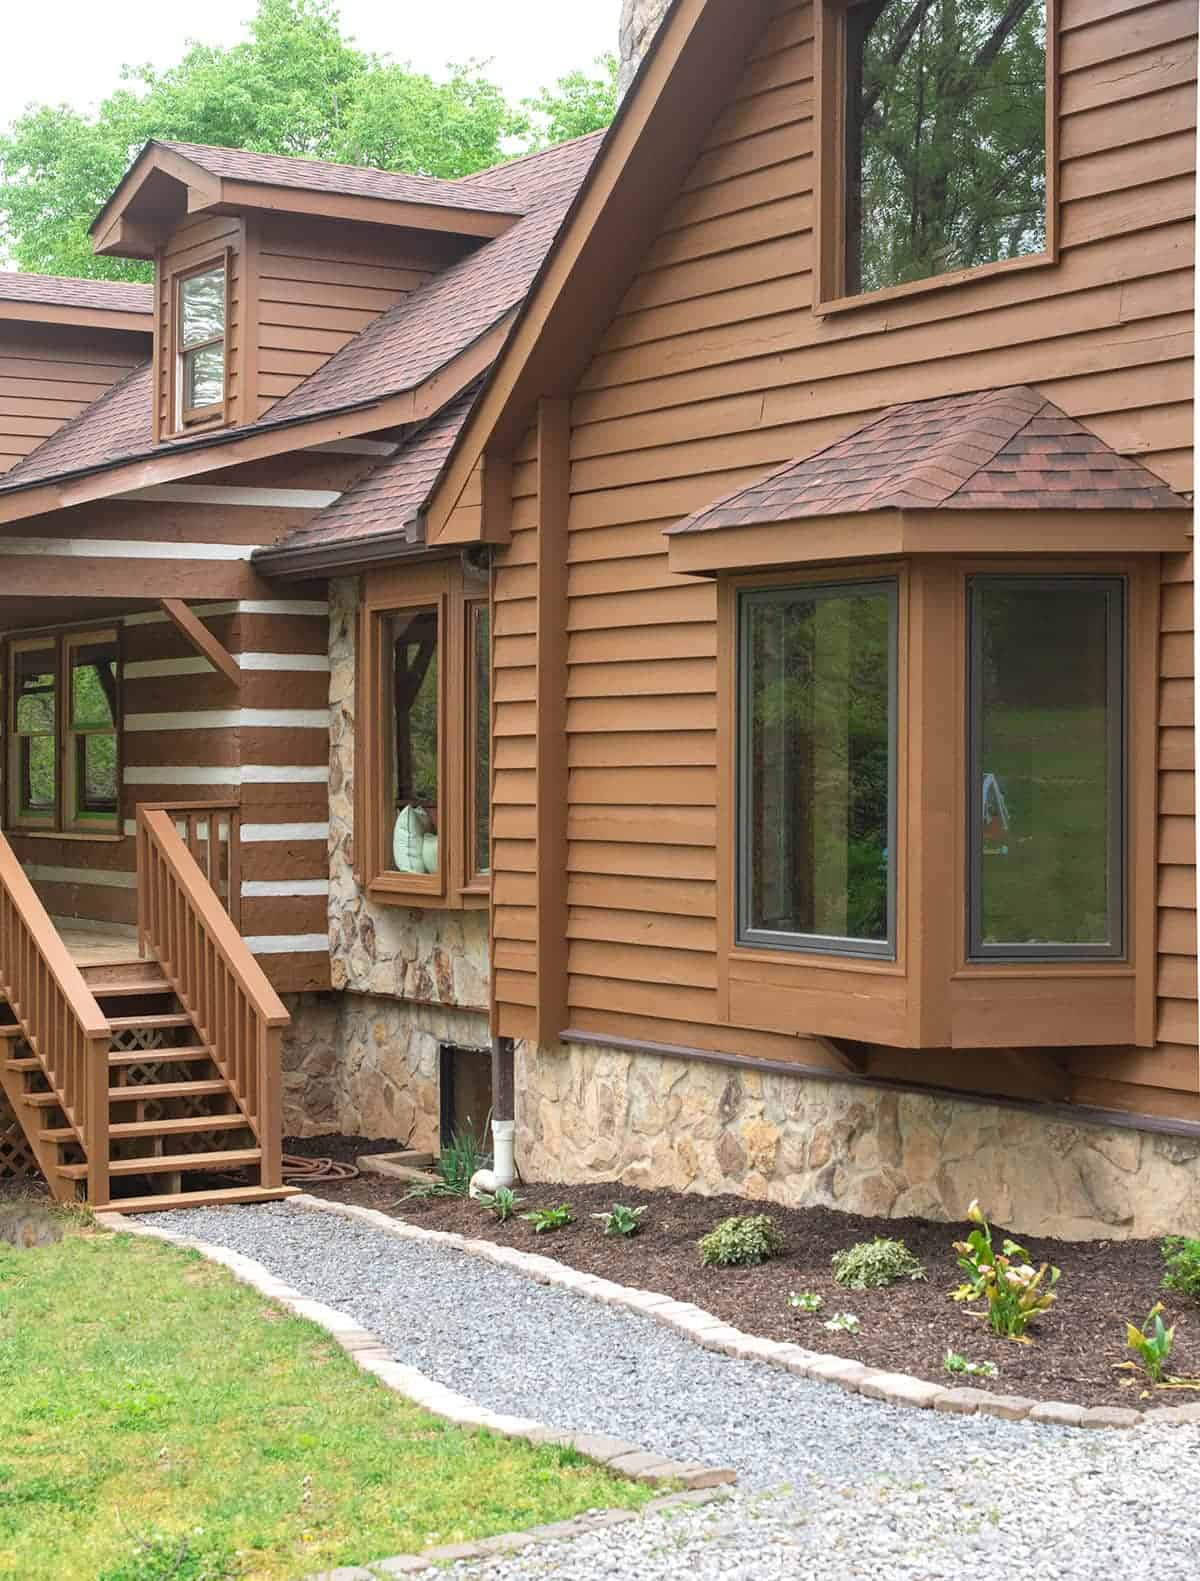 Gravel path with paver stone edging affordable walkway ideas. Log style cabin home with bay window overlooks new walkway and small garden.